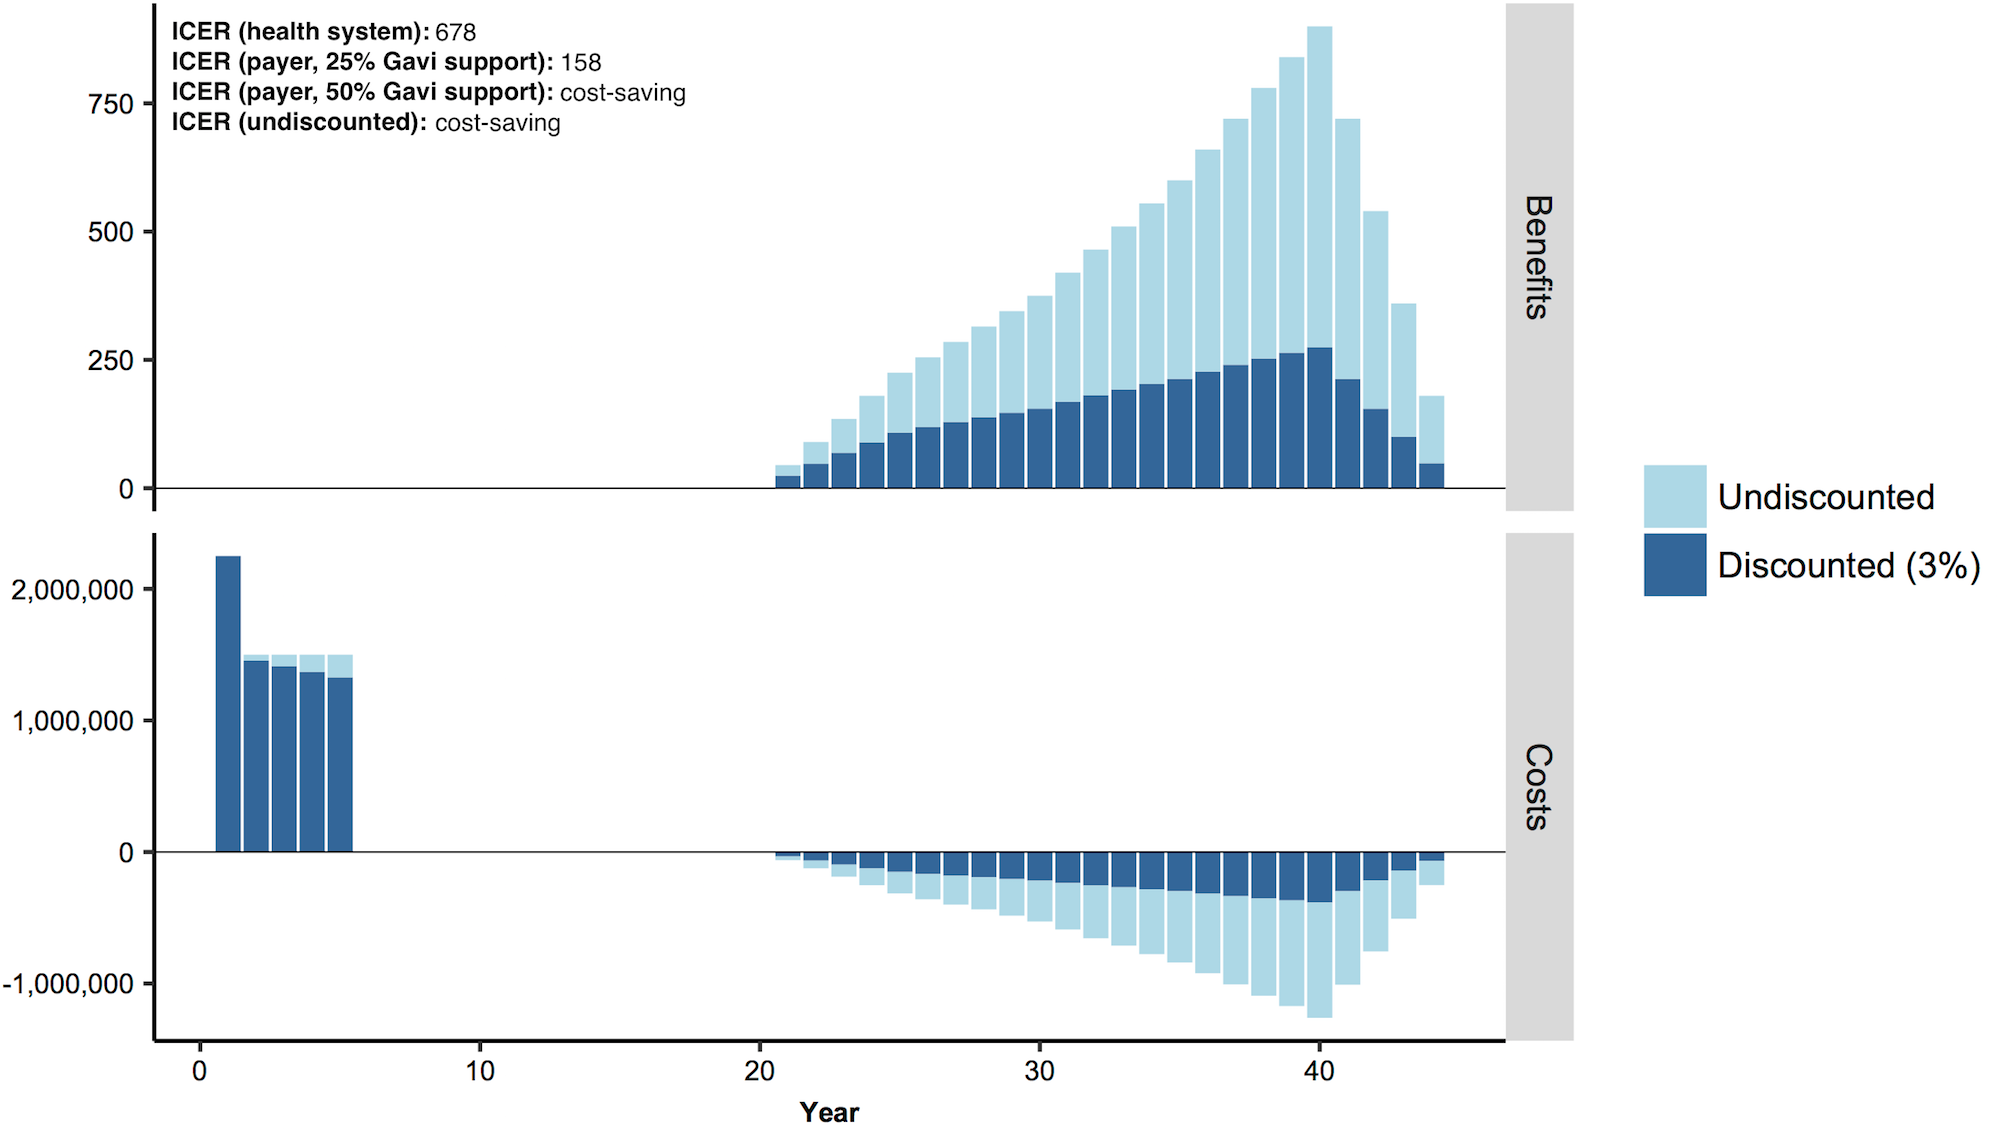 Distribution of costs and benefits per year for a stylized vaccination intervention.